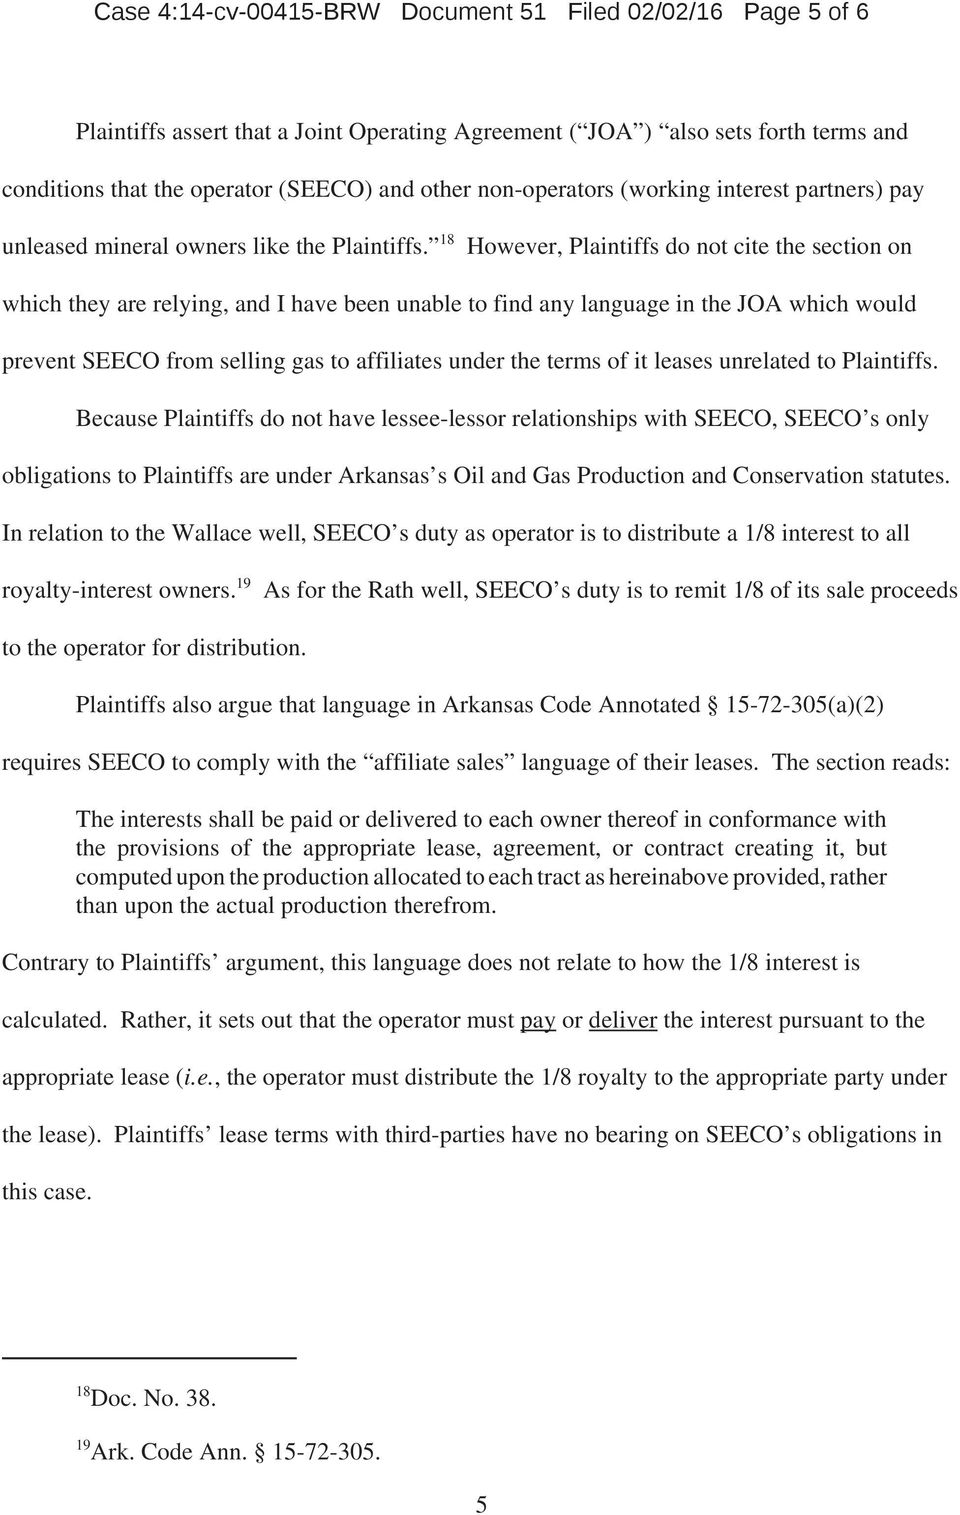 18 However, Plaintiffs do not cite the section on which they are relying, and I have been unable to find any language in the JOA which would prevent SEECO from selling gas to affiliates under the